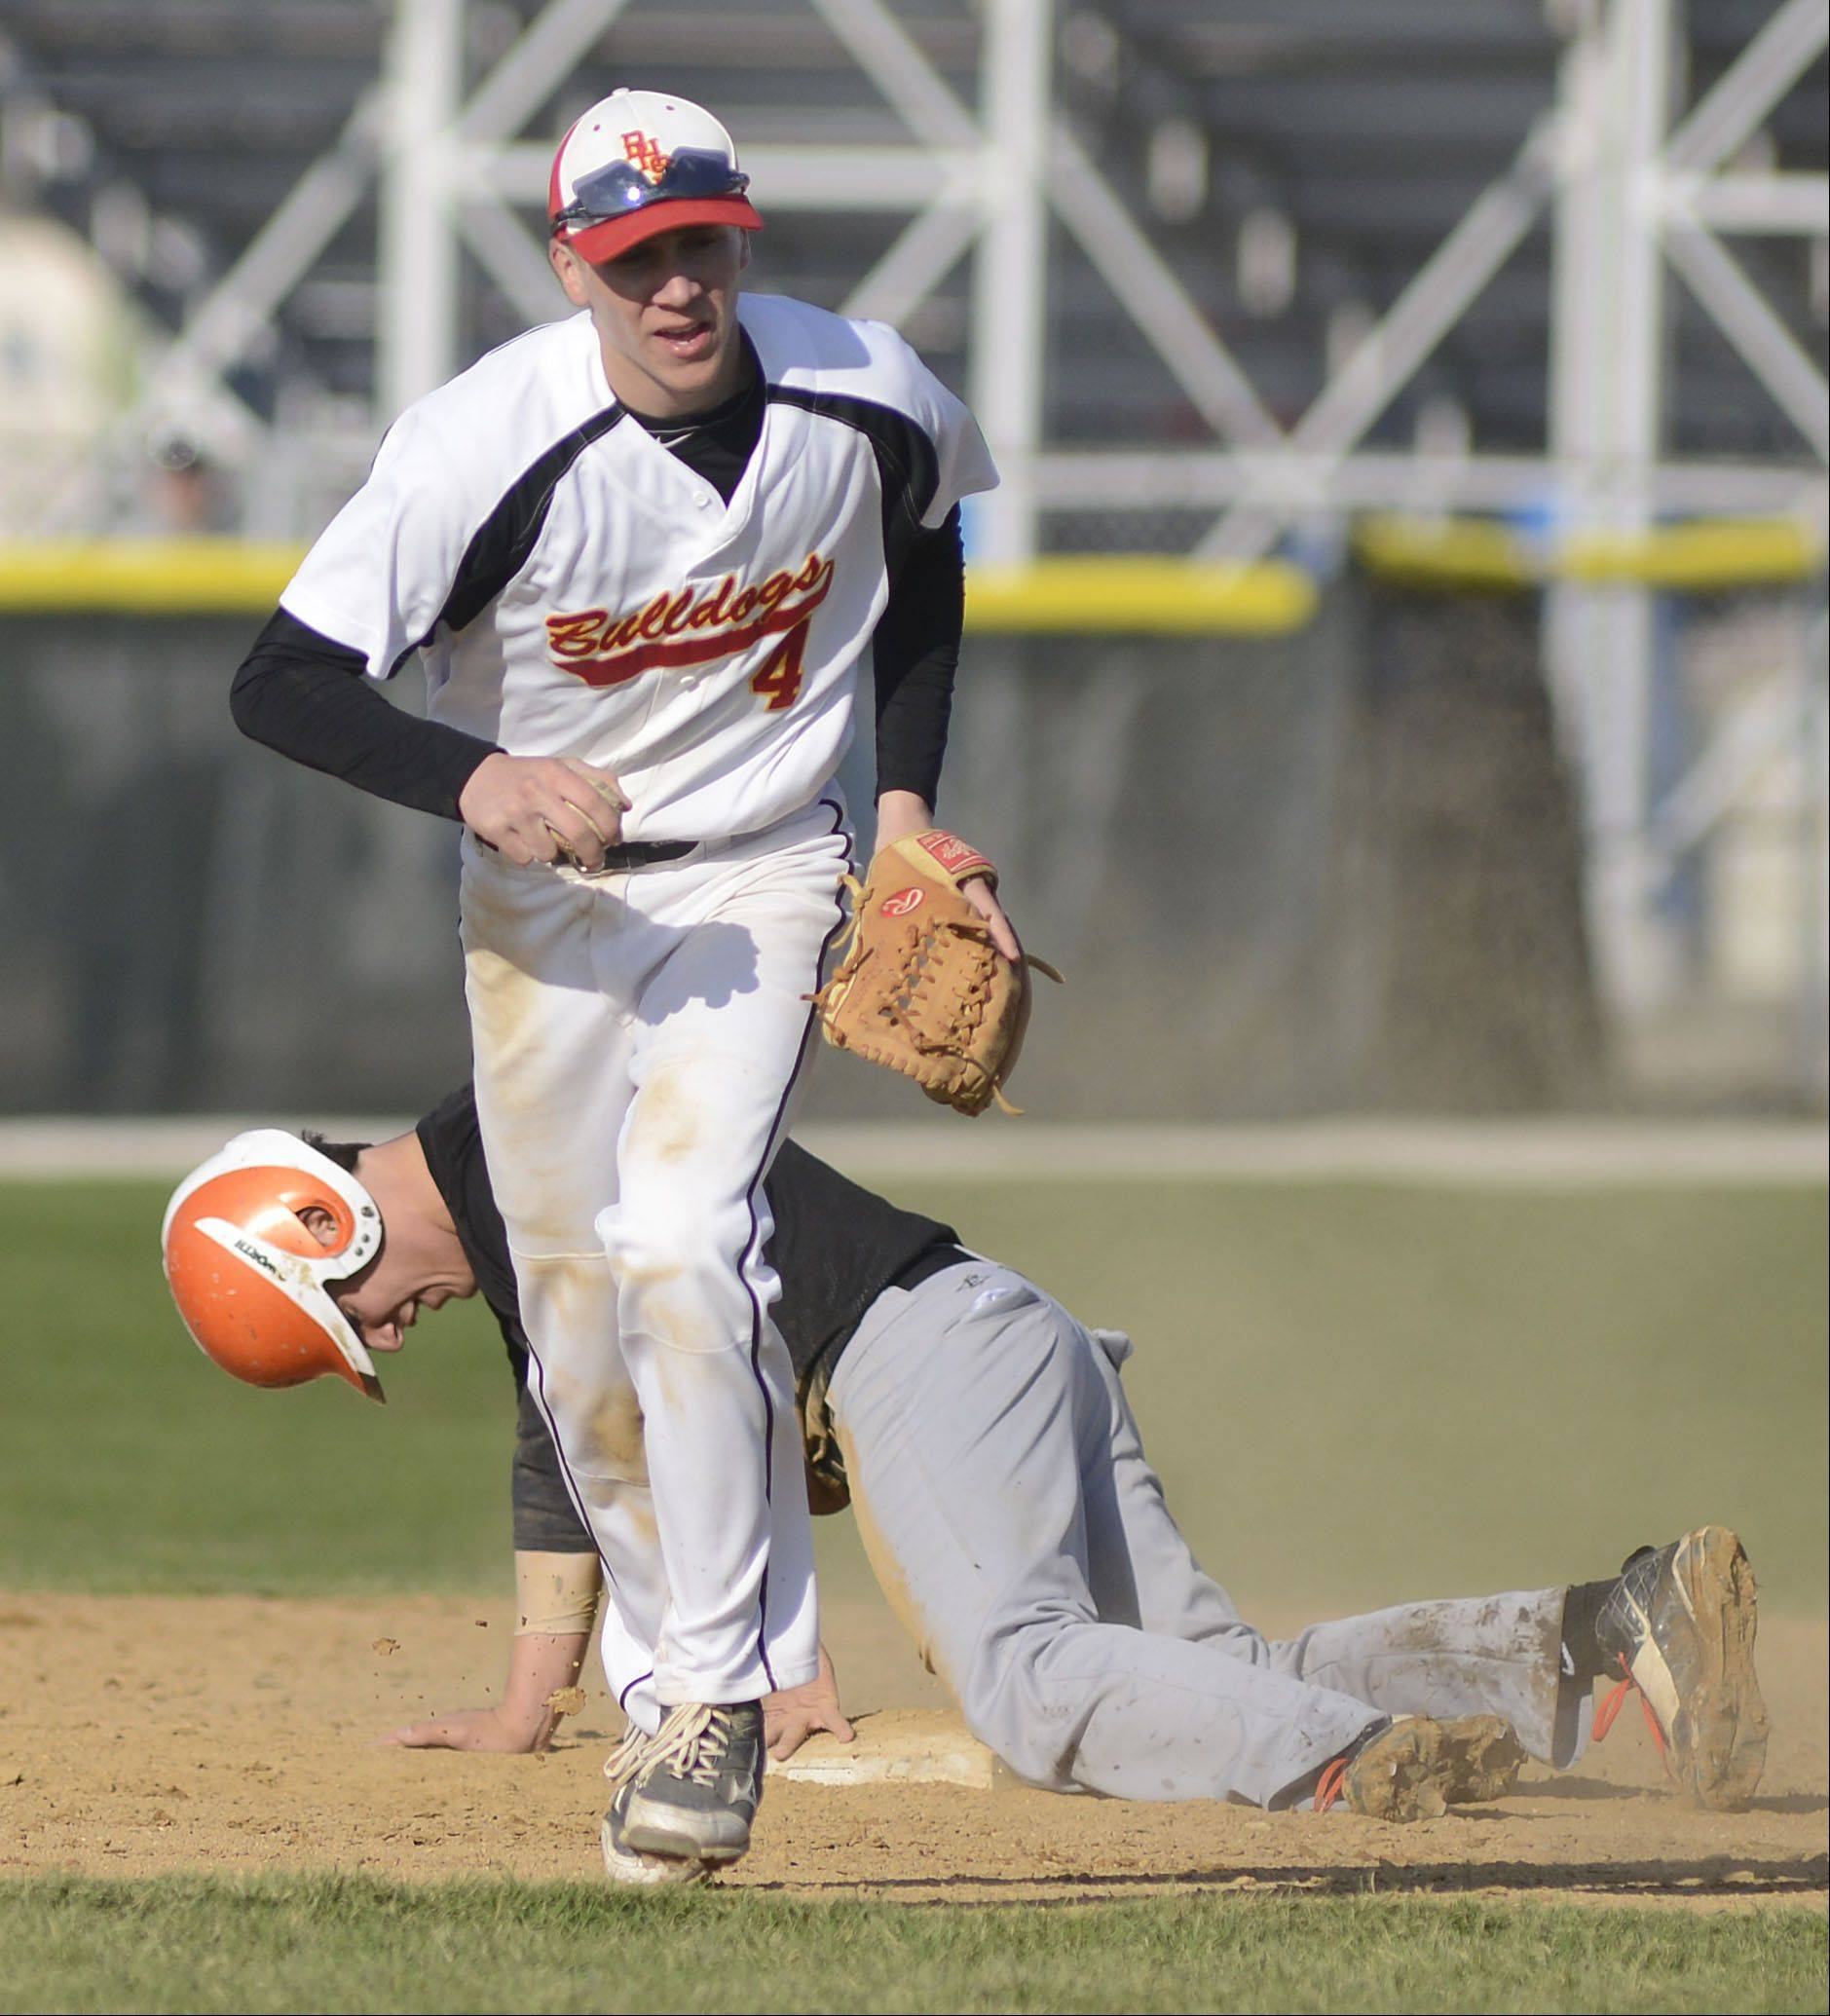 Batavia's Billy Zwick heads back to the dugout as St. Charles East's Anthony Sciarrino hangs his head after being tagged out at second base by Zwick in the fourth inning on Wednesday, April 24.